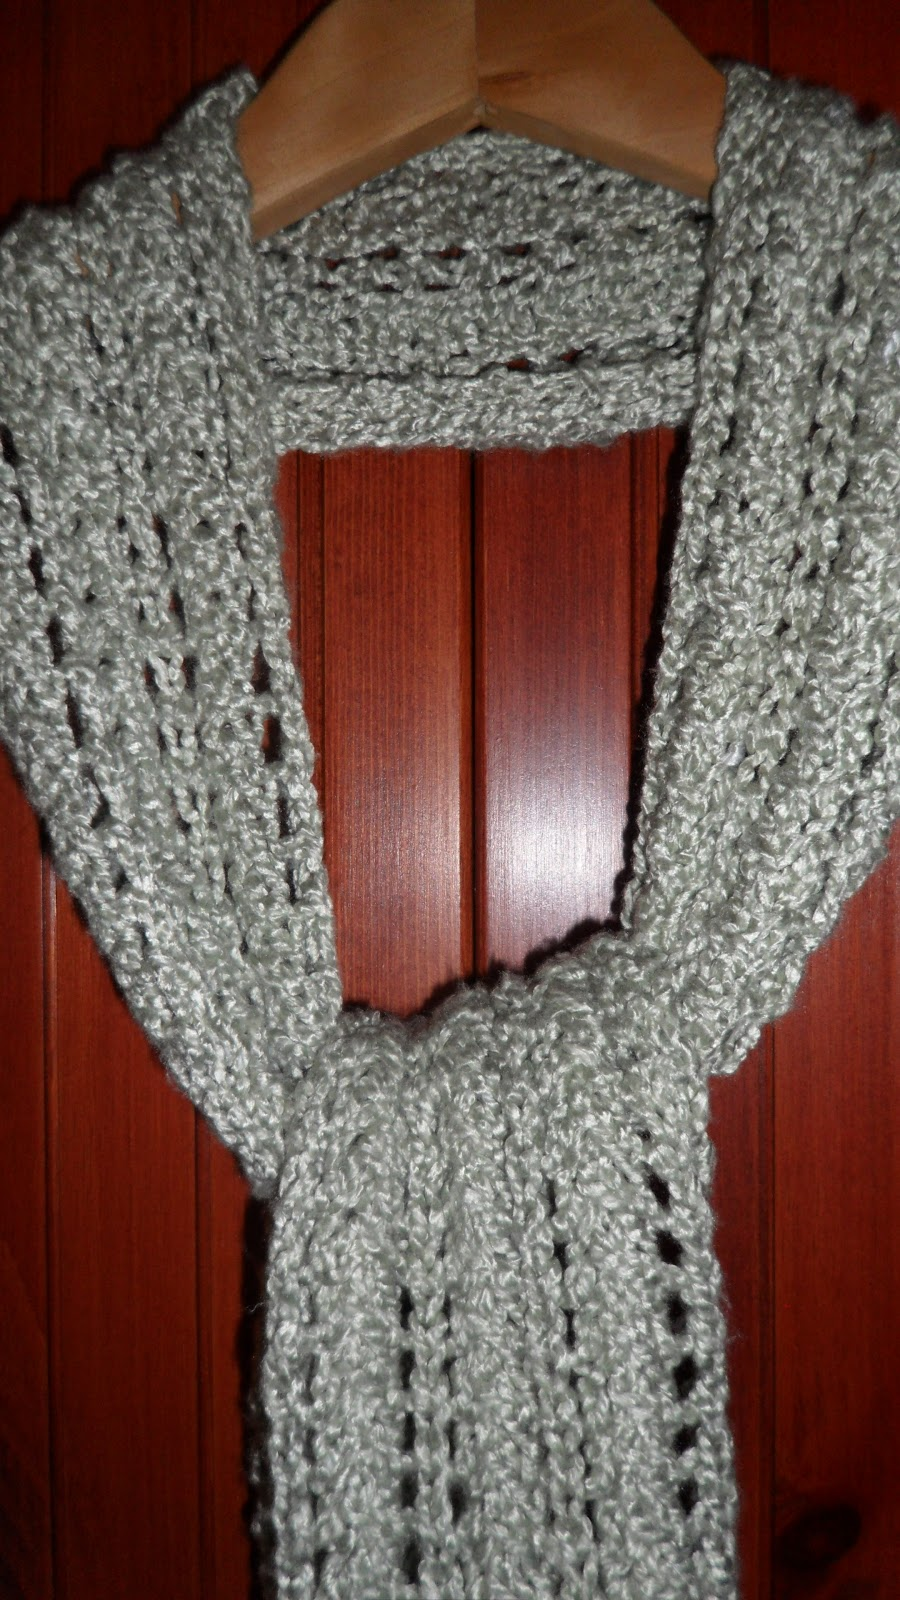 Knit Lace Stitch Scarf : stitch by stitch i knit: Easy Lace Scarf